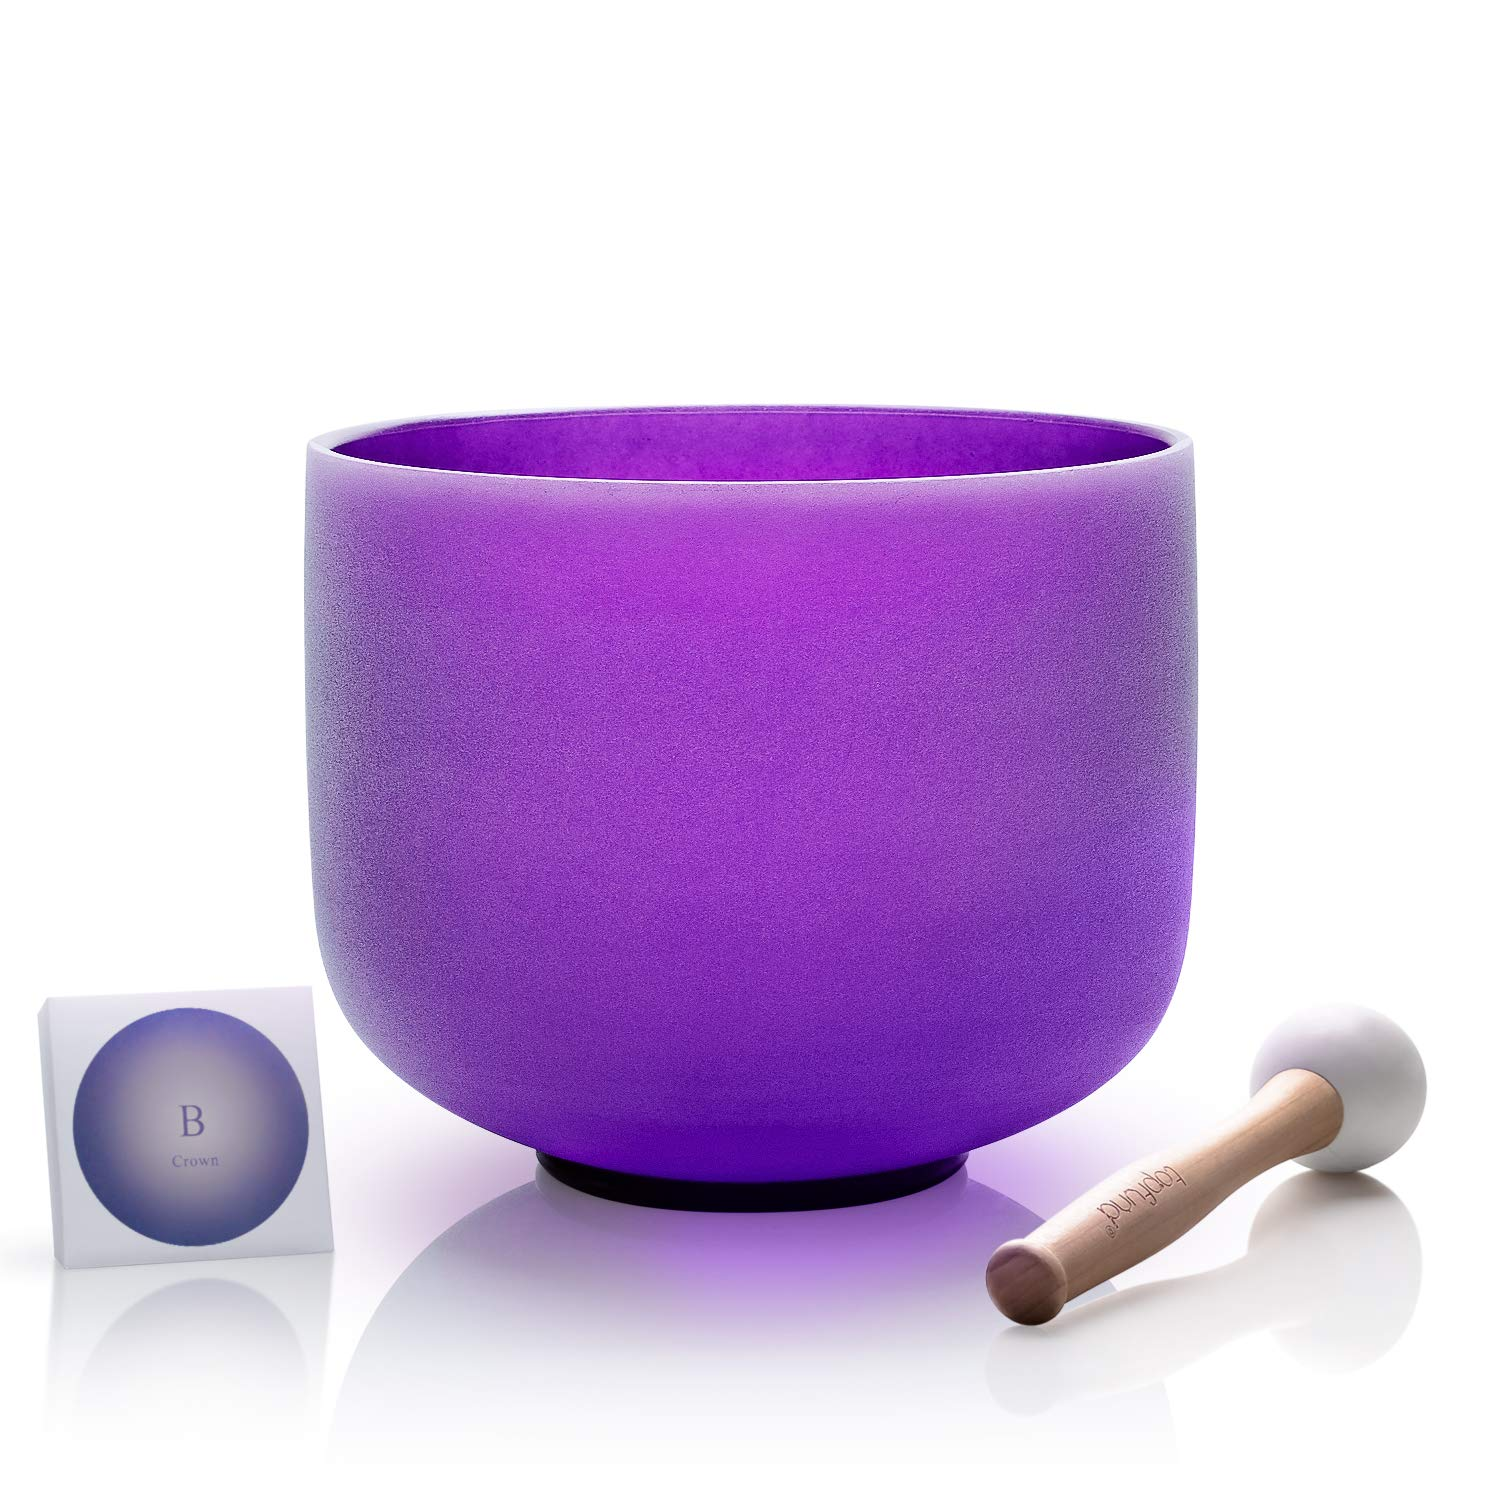 TOPFUND B Note Quartz Crystal Singing Bowl Crown Chakra Purple Color 8 inch O-ring and Rubber Mallet included by TOPFUND